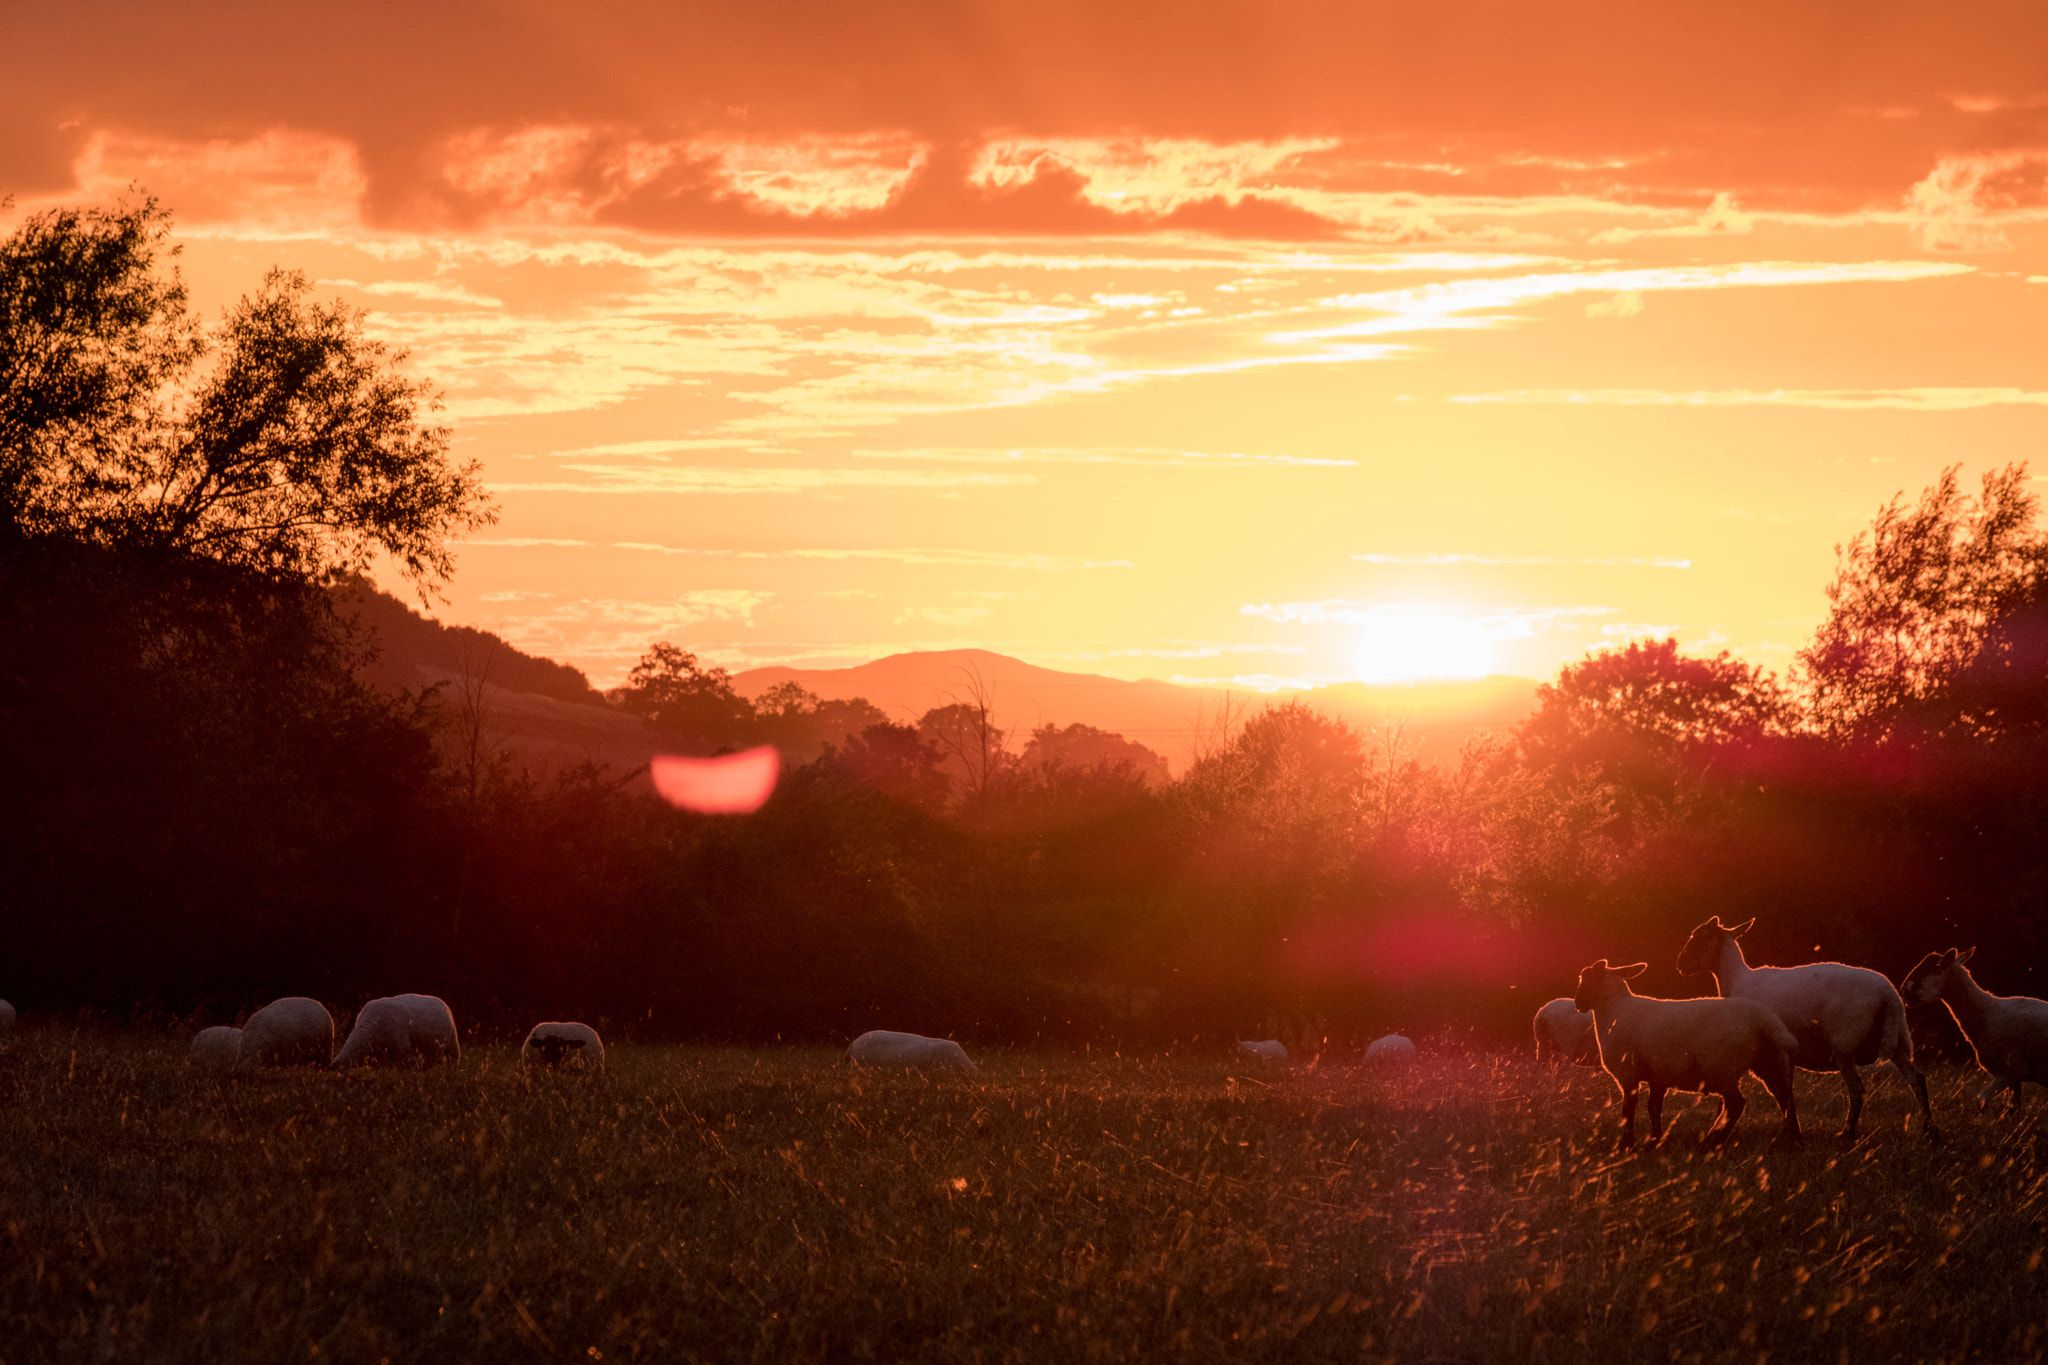 morning sheeps at dawn